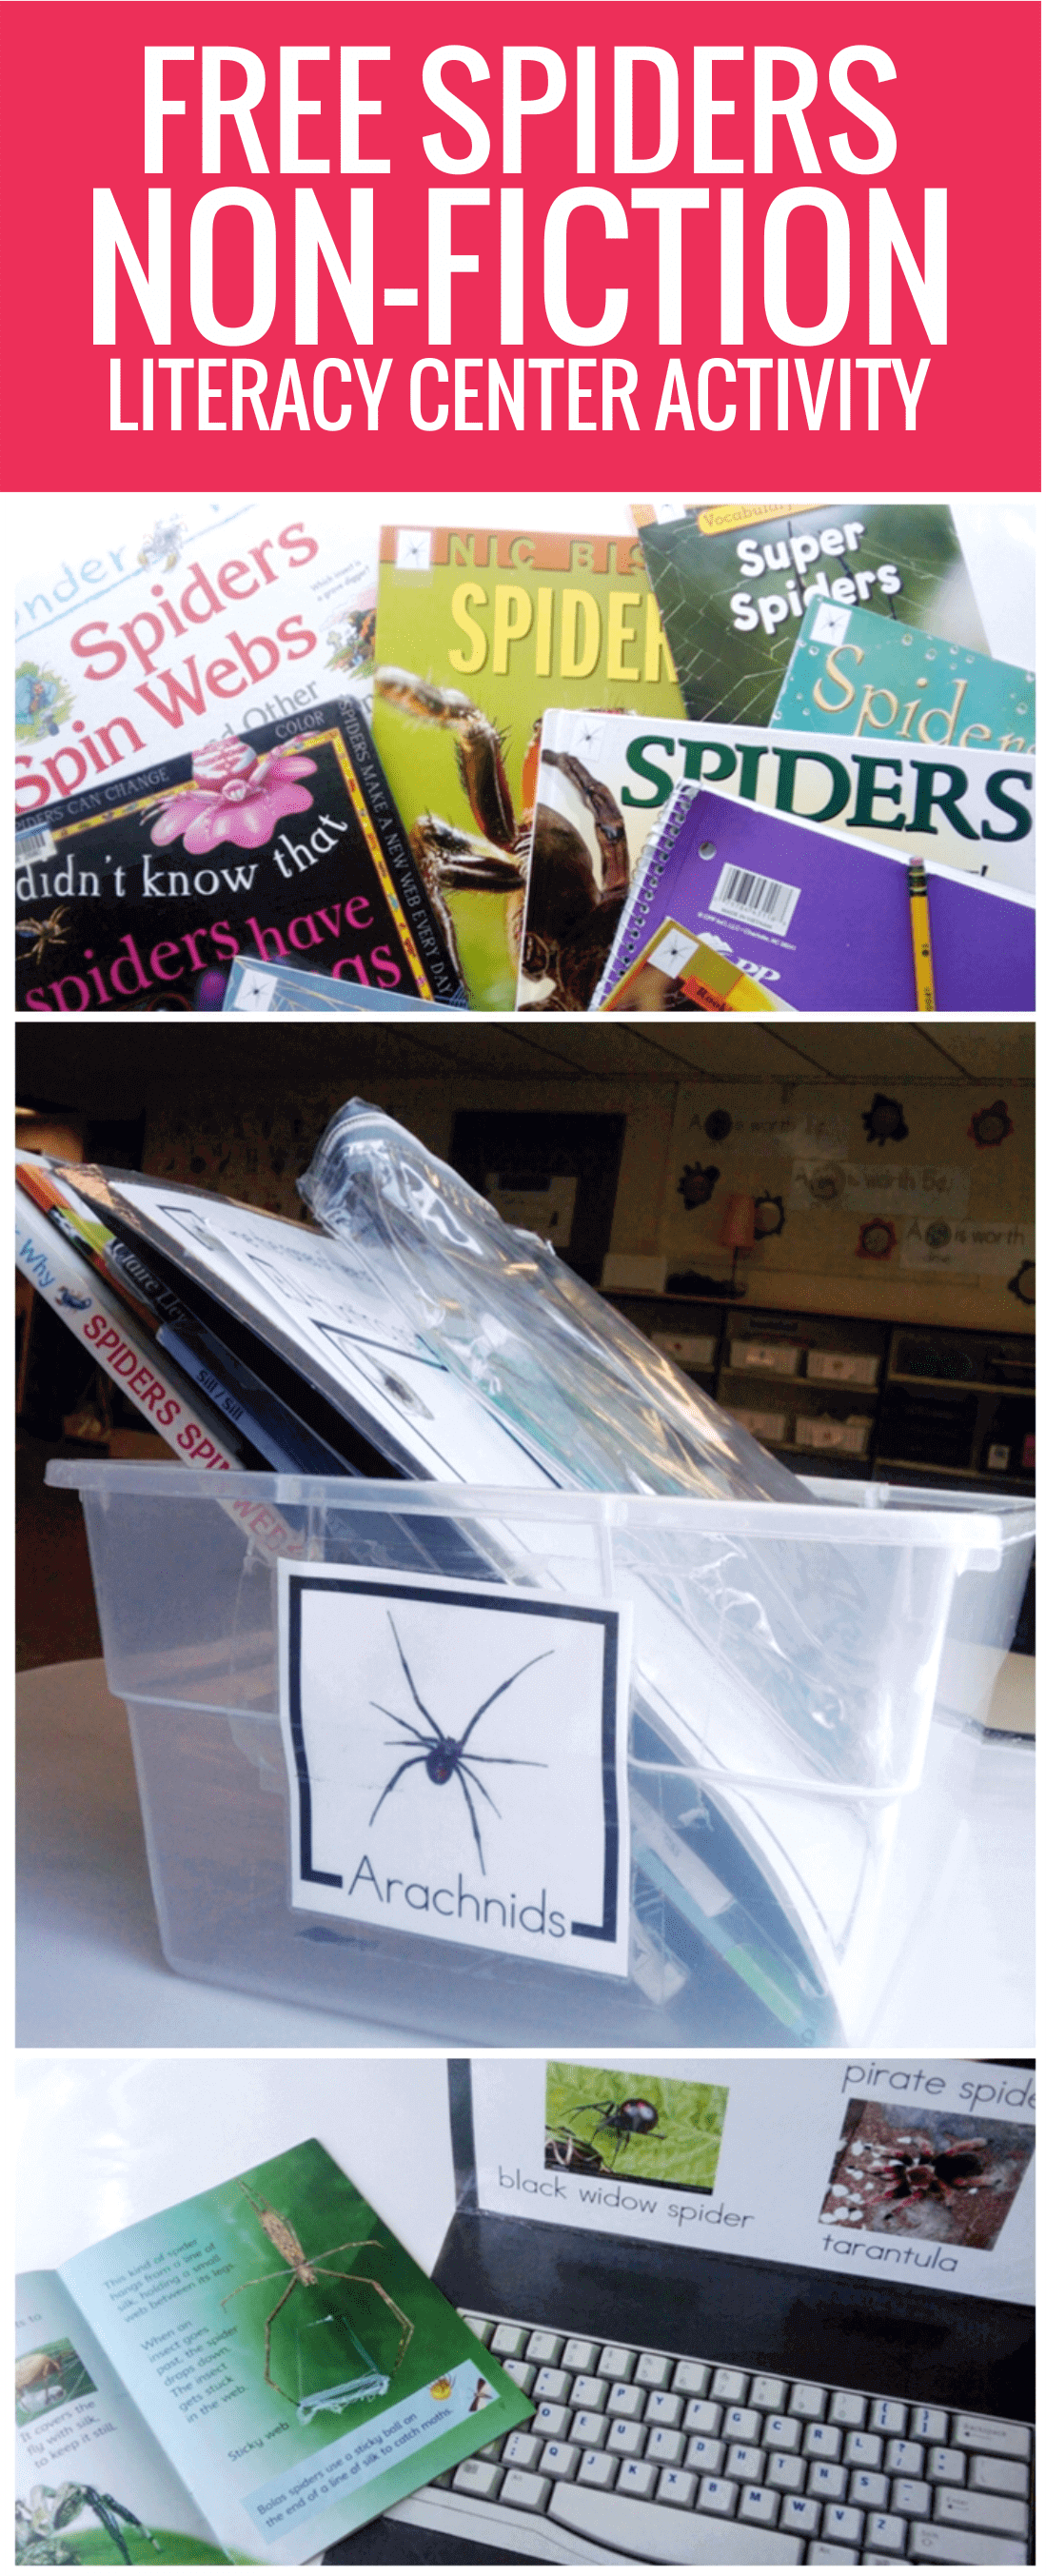 free Spiders Non-fiction Literacy Center Activity for kindergarten